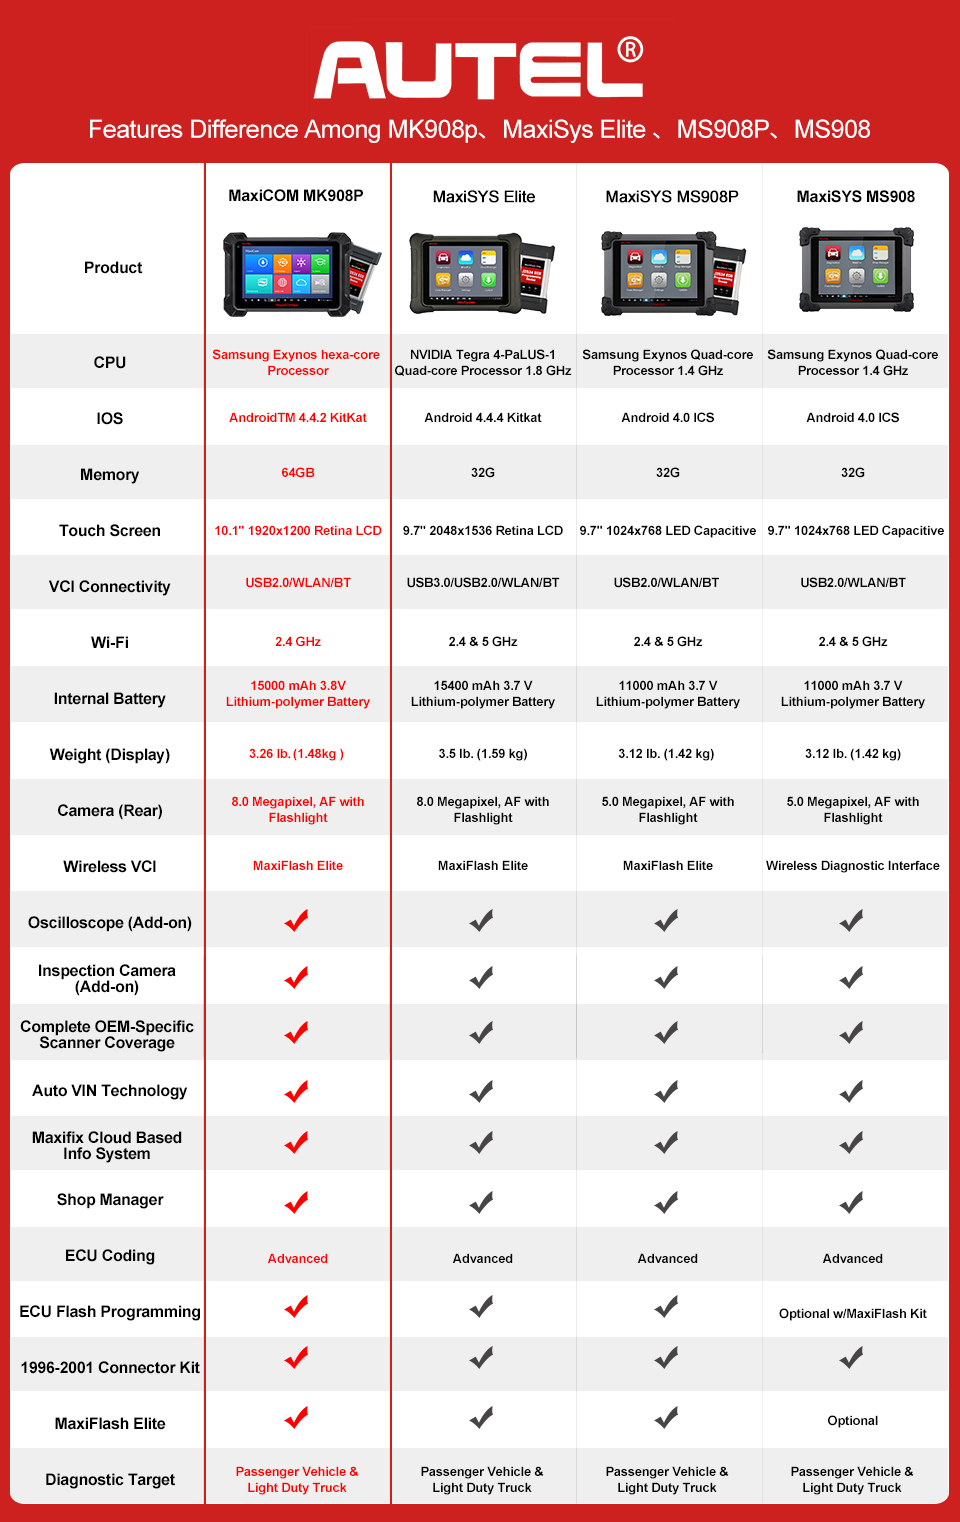 Differences_Between_MK908P_and_MS908P